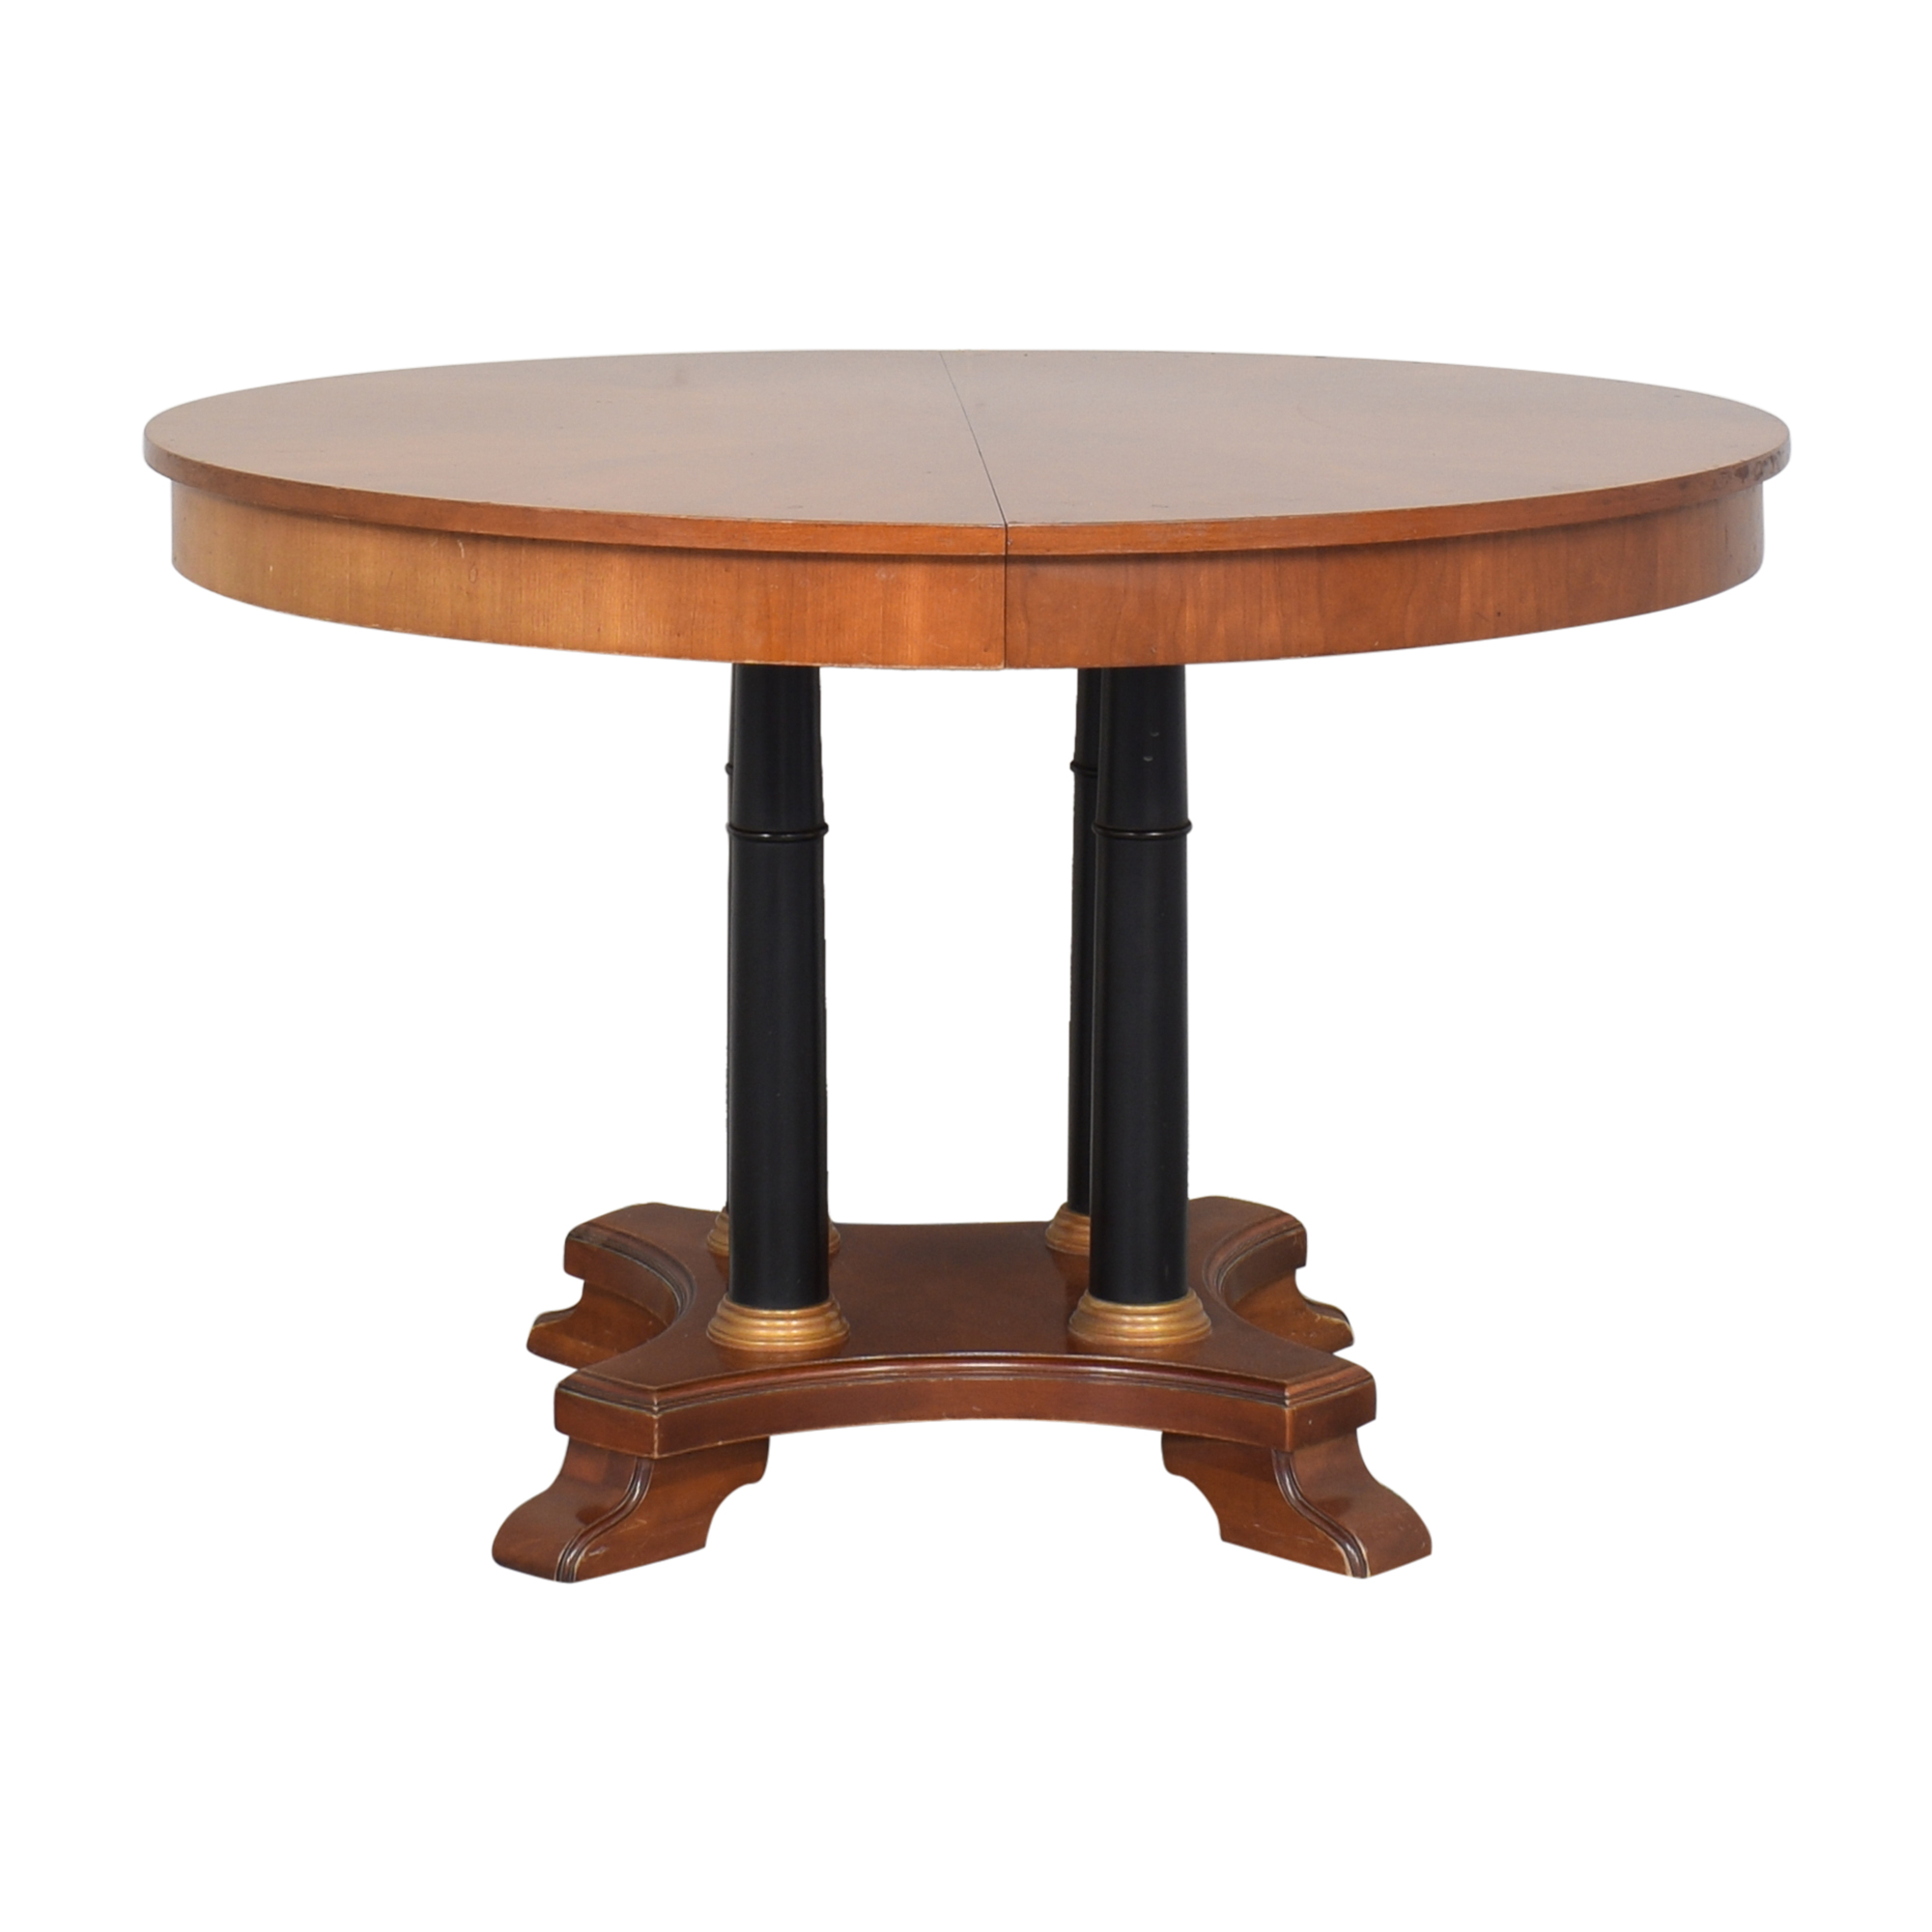 Ethan Allen Ethan Allen Medallion Collection Round Extendable Dining Table Tables